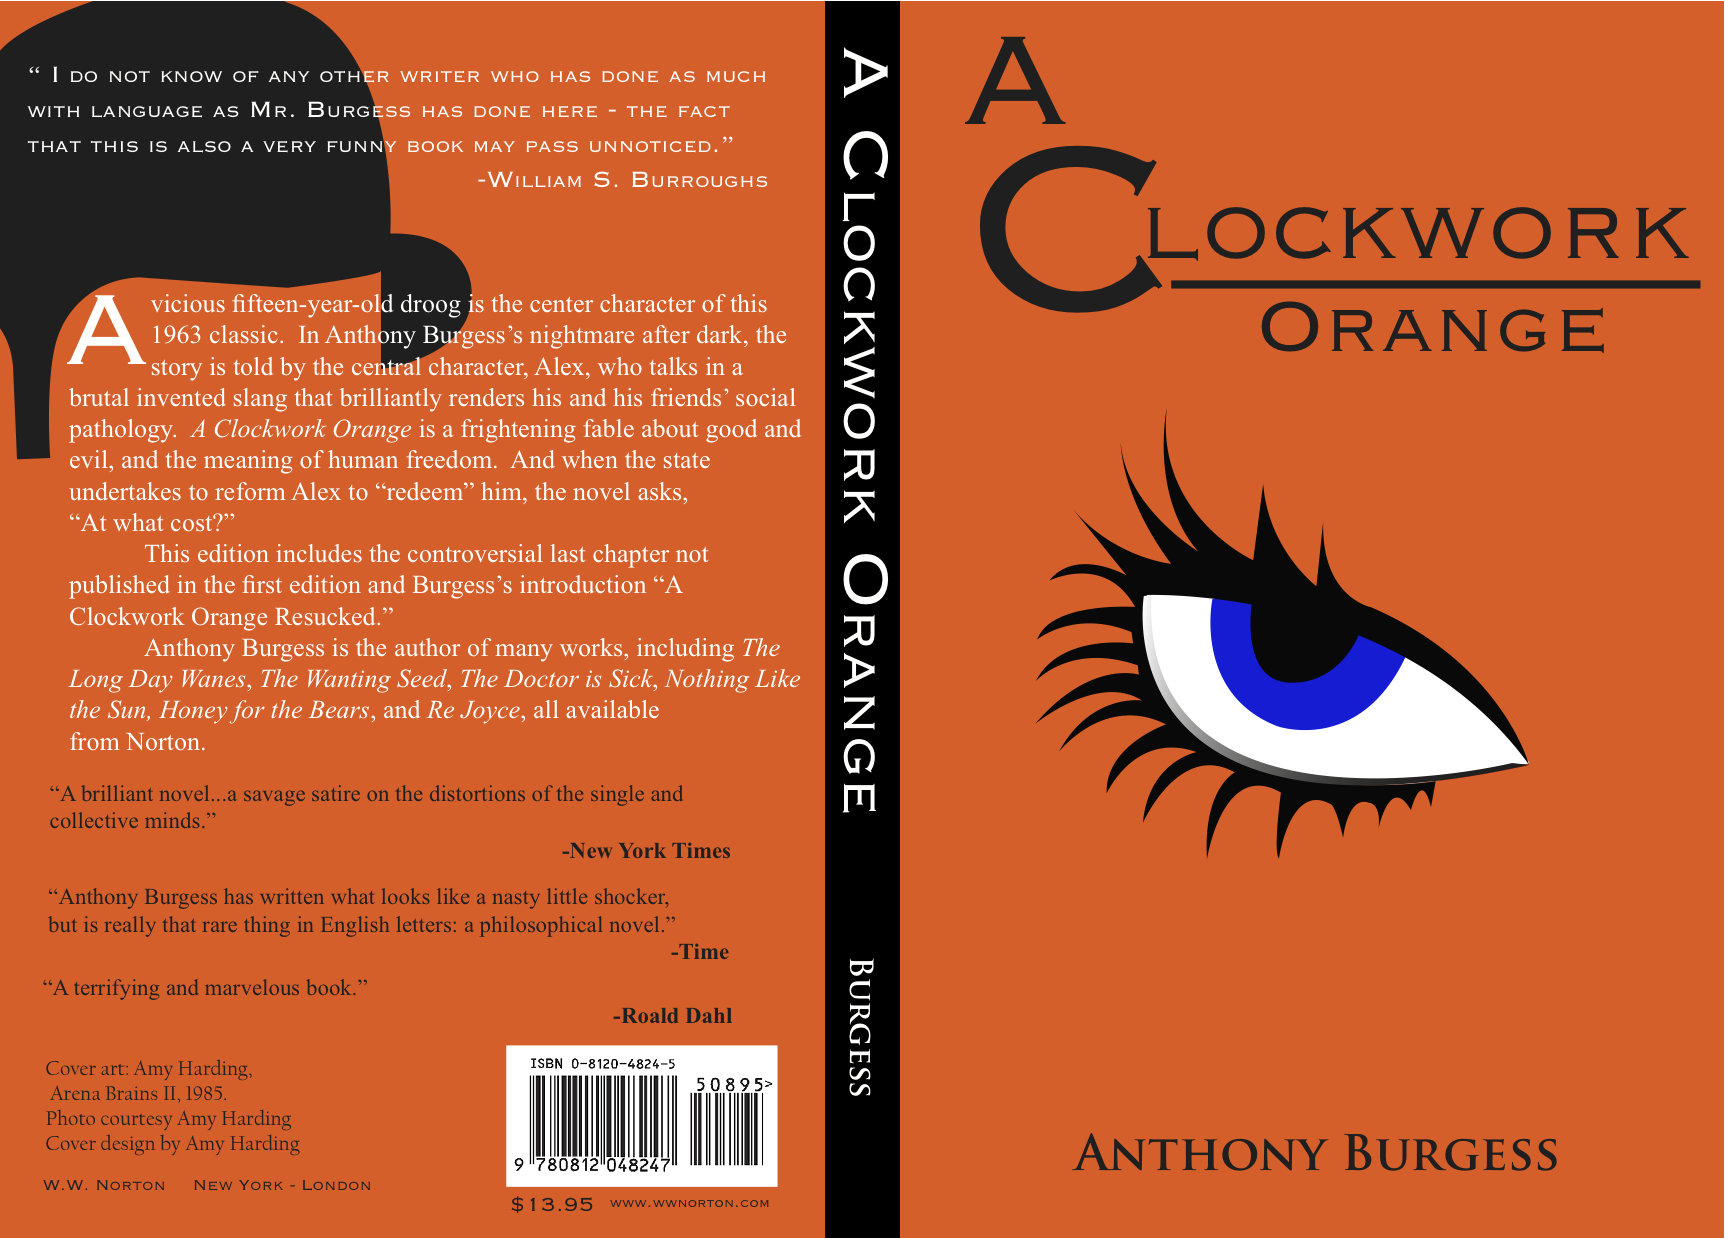 a clockwork orange choice and life course In an introduction called a clockwork orange resucked, he refers to a person words, life, the orange – and when alex has the power of choice.